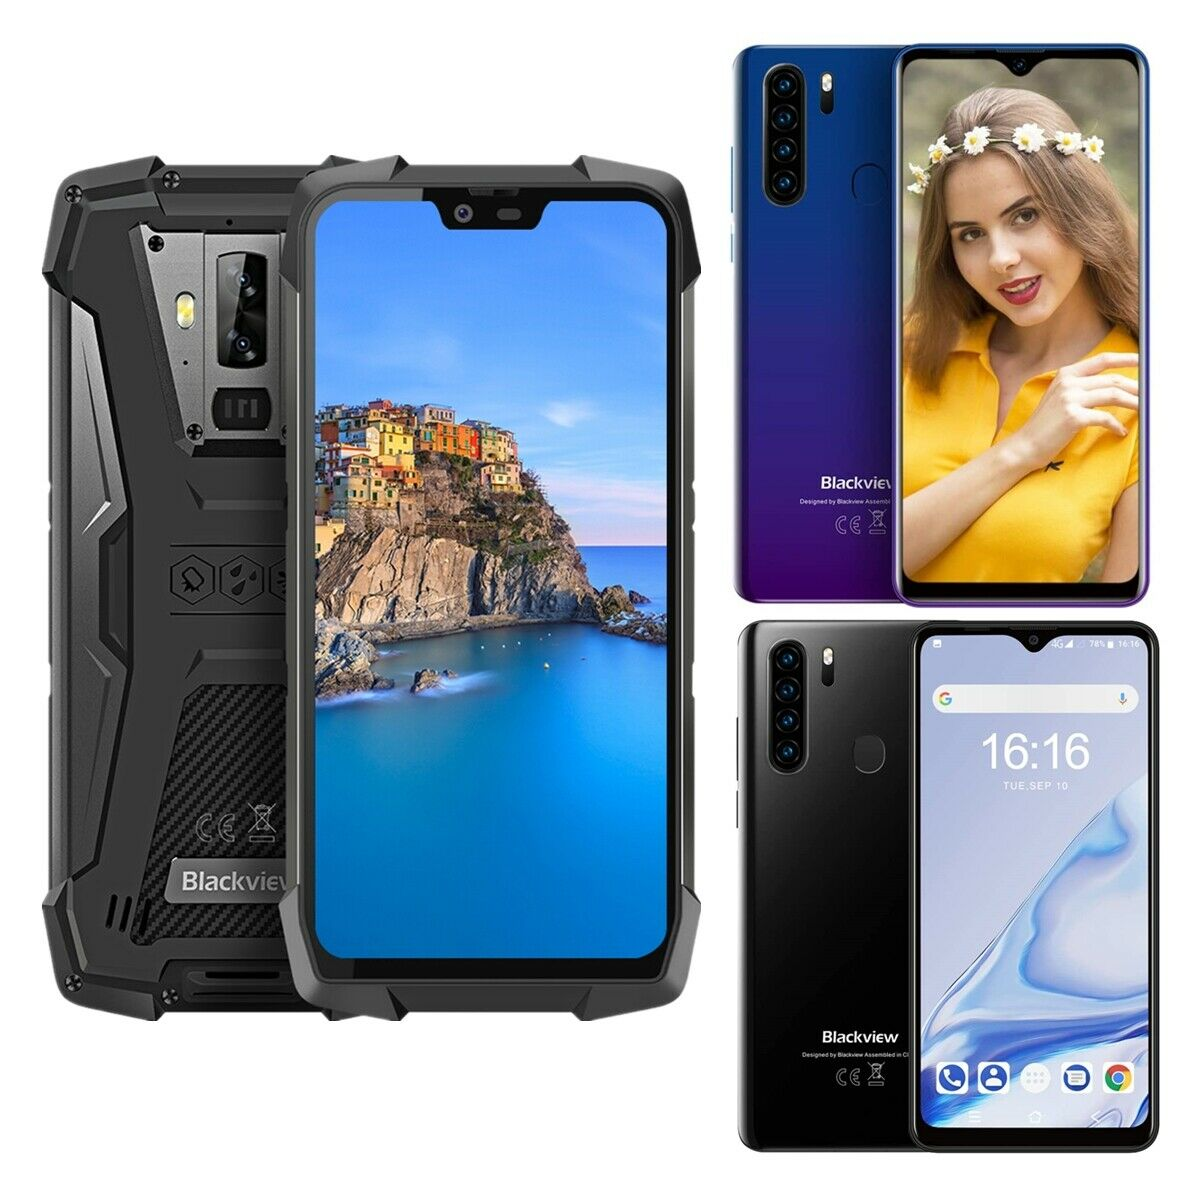 Android Phone - Blackview BV9700 Pro A80 Pro Android 9.0 Smartphone 4G Mobile Phone Dual SIM